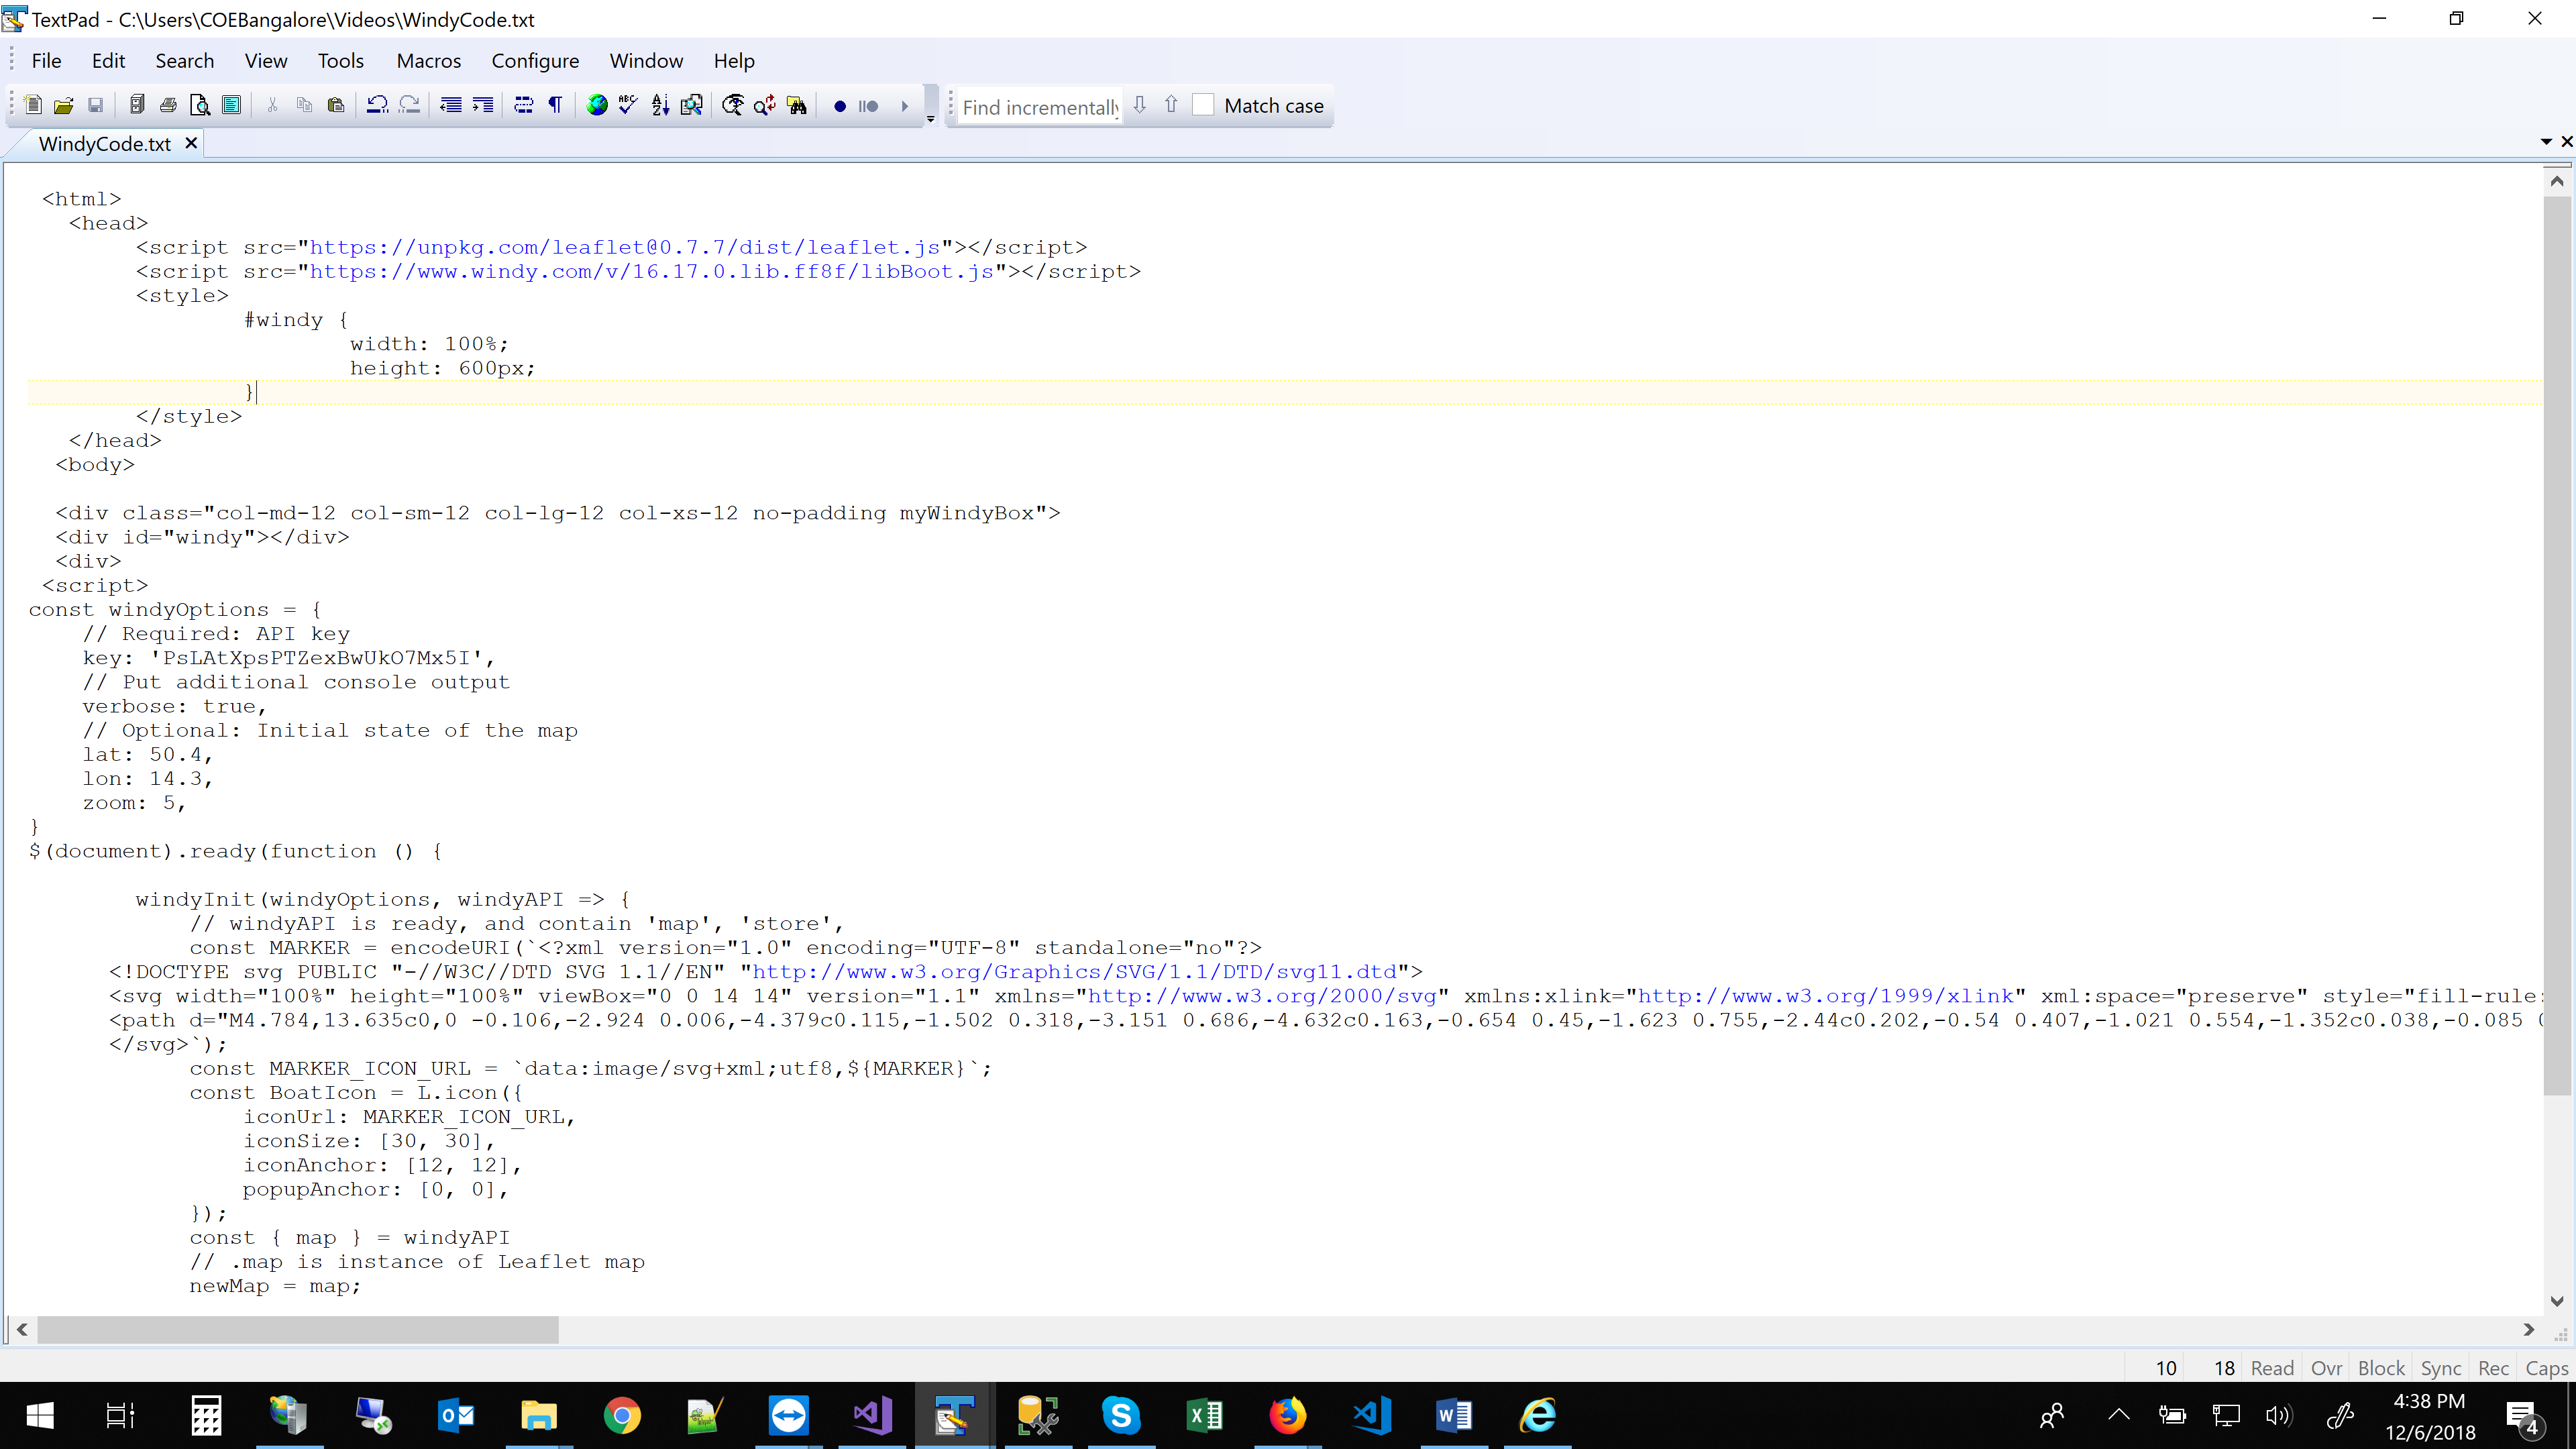 Windy API V4 not Working in IE11 @ Windy Community